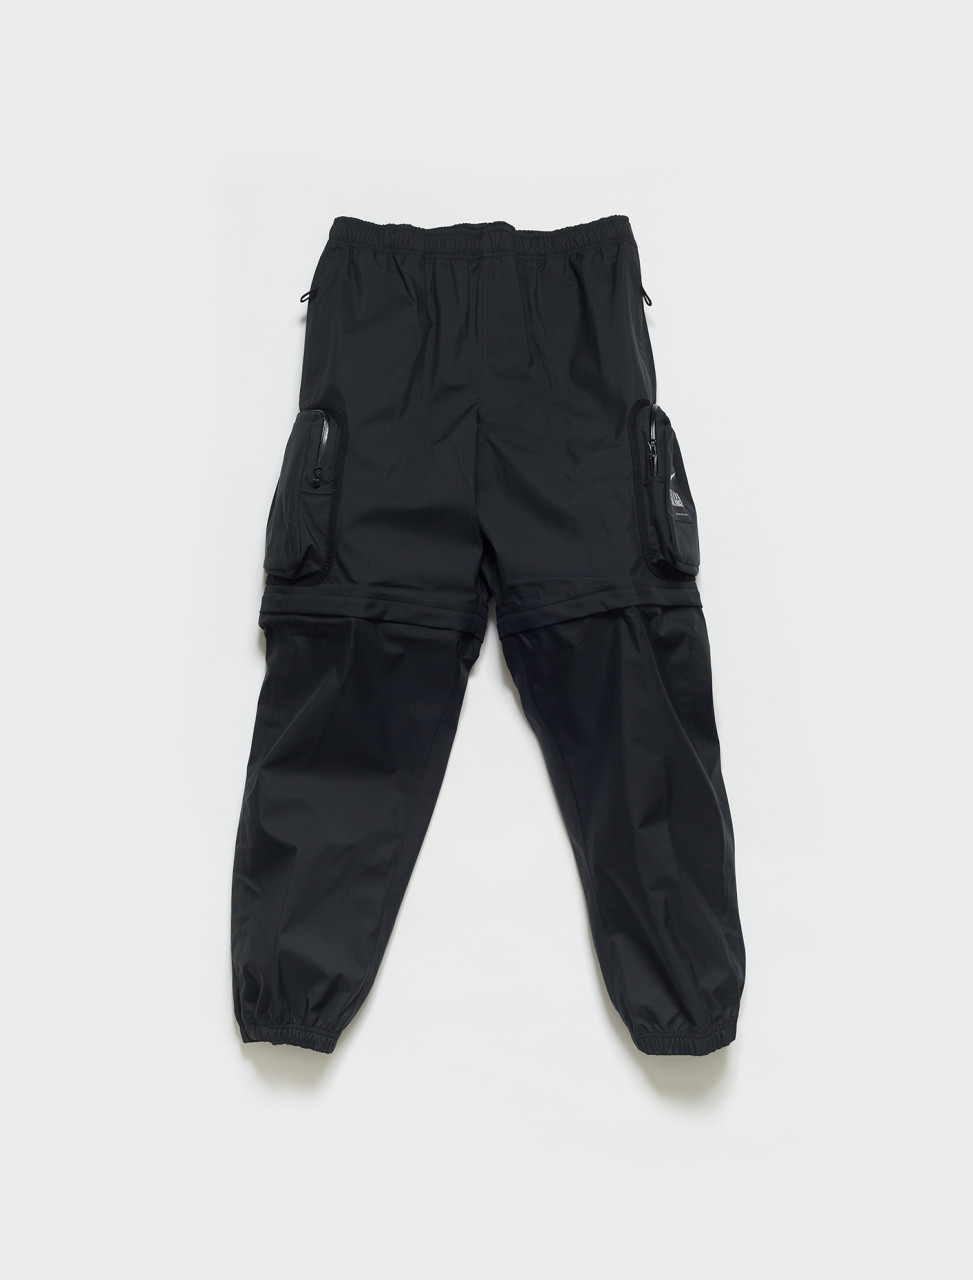 CW8019-010 NIKE UNDERCOVER NRG 2-IN-1 TROUSER BLACK